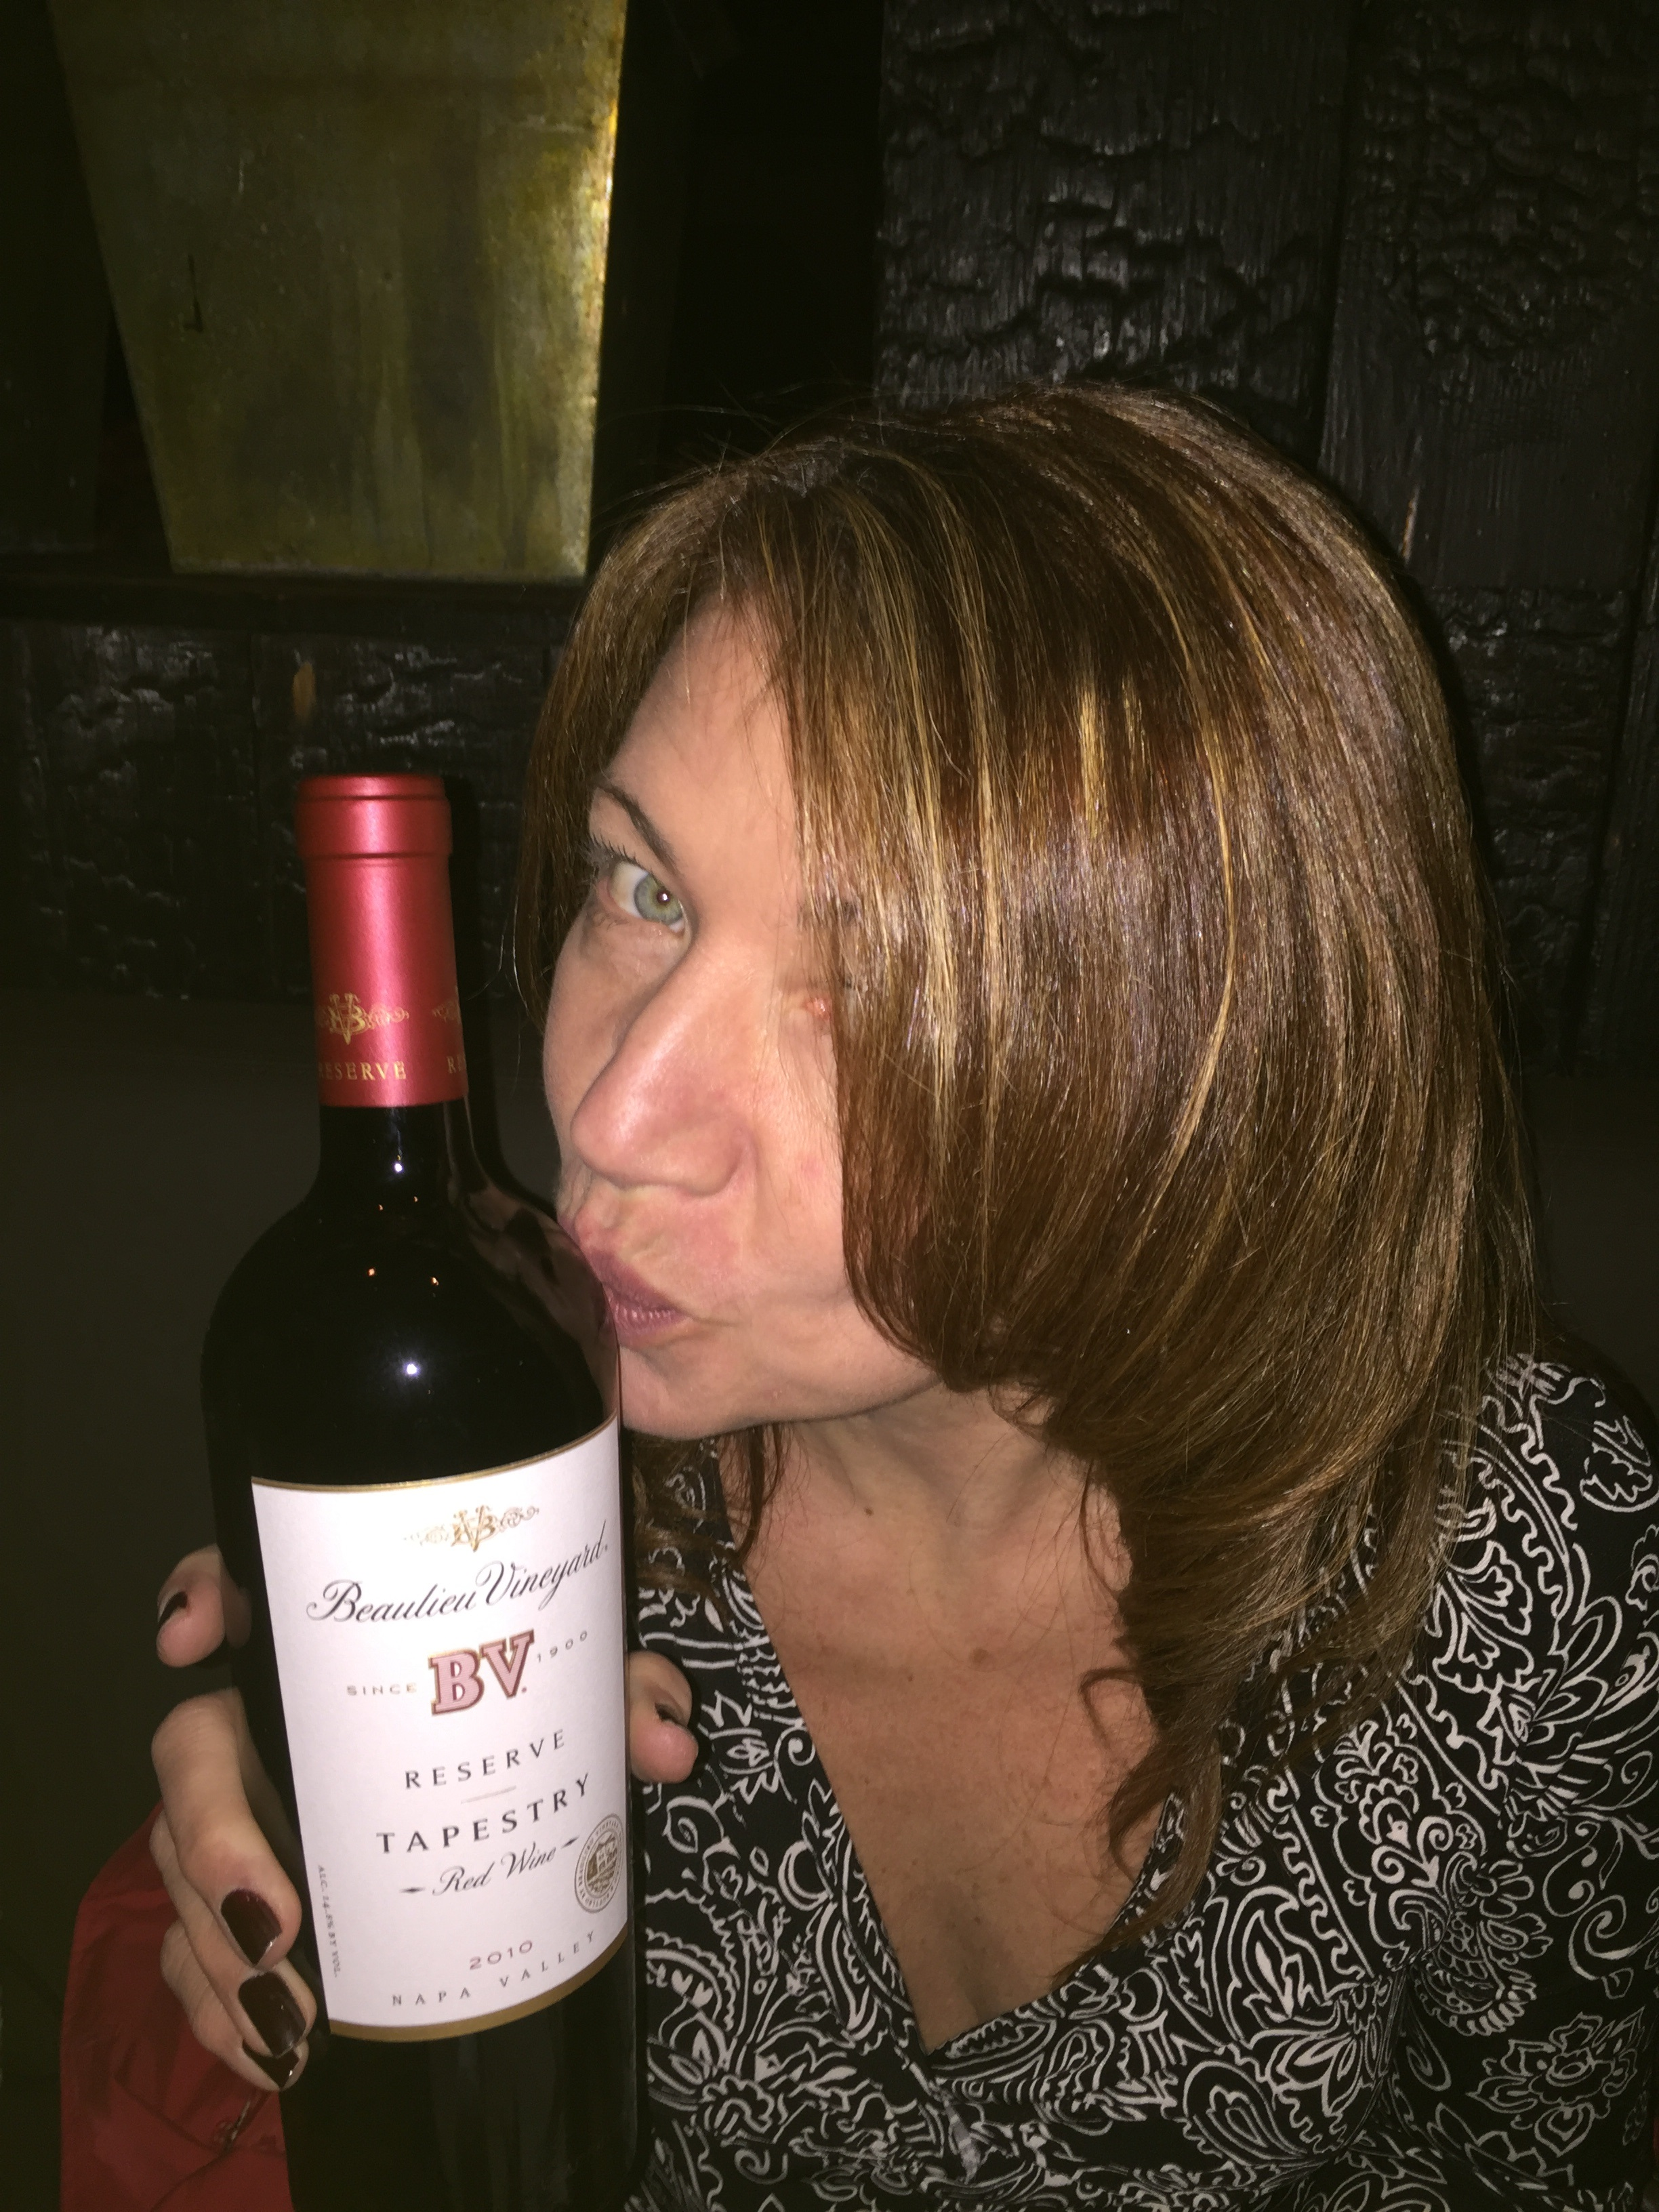 Kissing a Wine Bottle